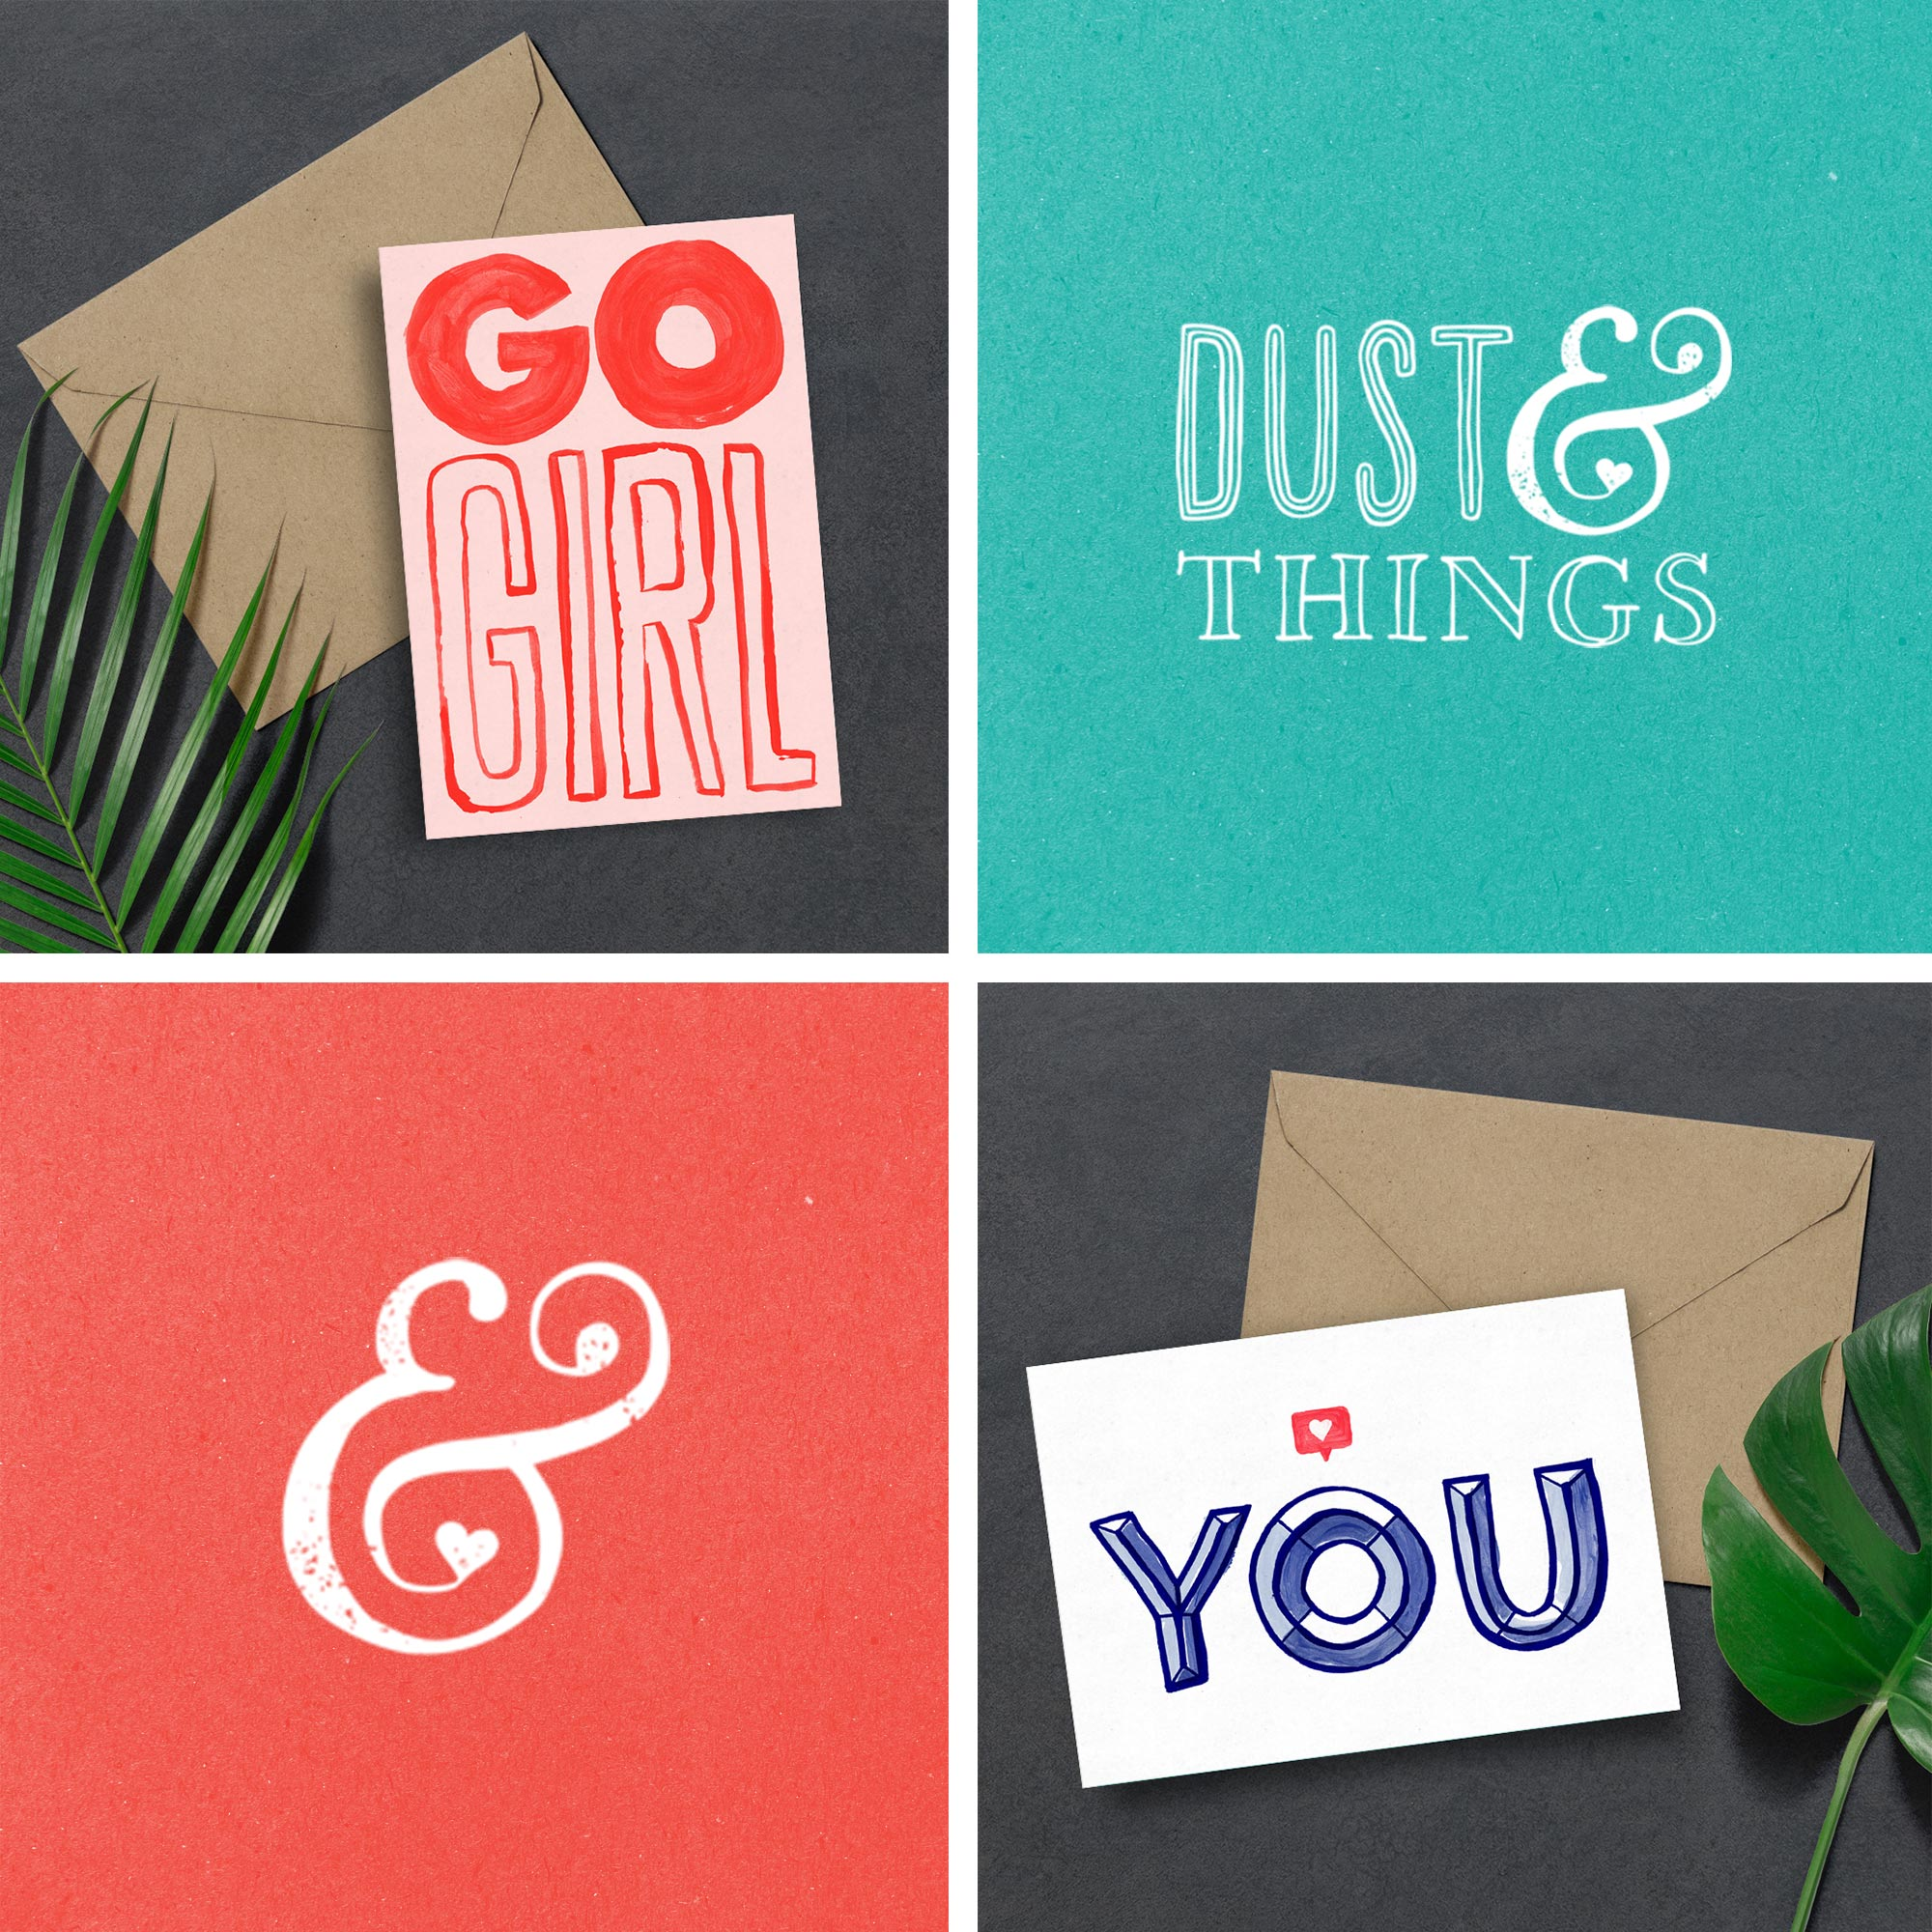 dust and things illustration graphic design greeting cards branding brand business marketing